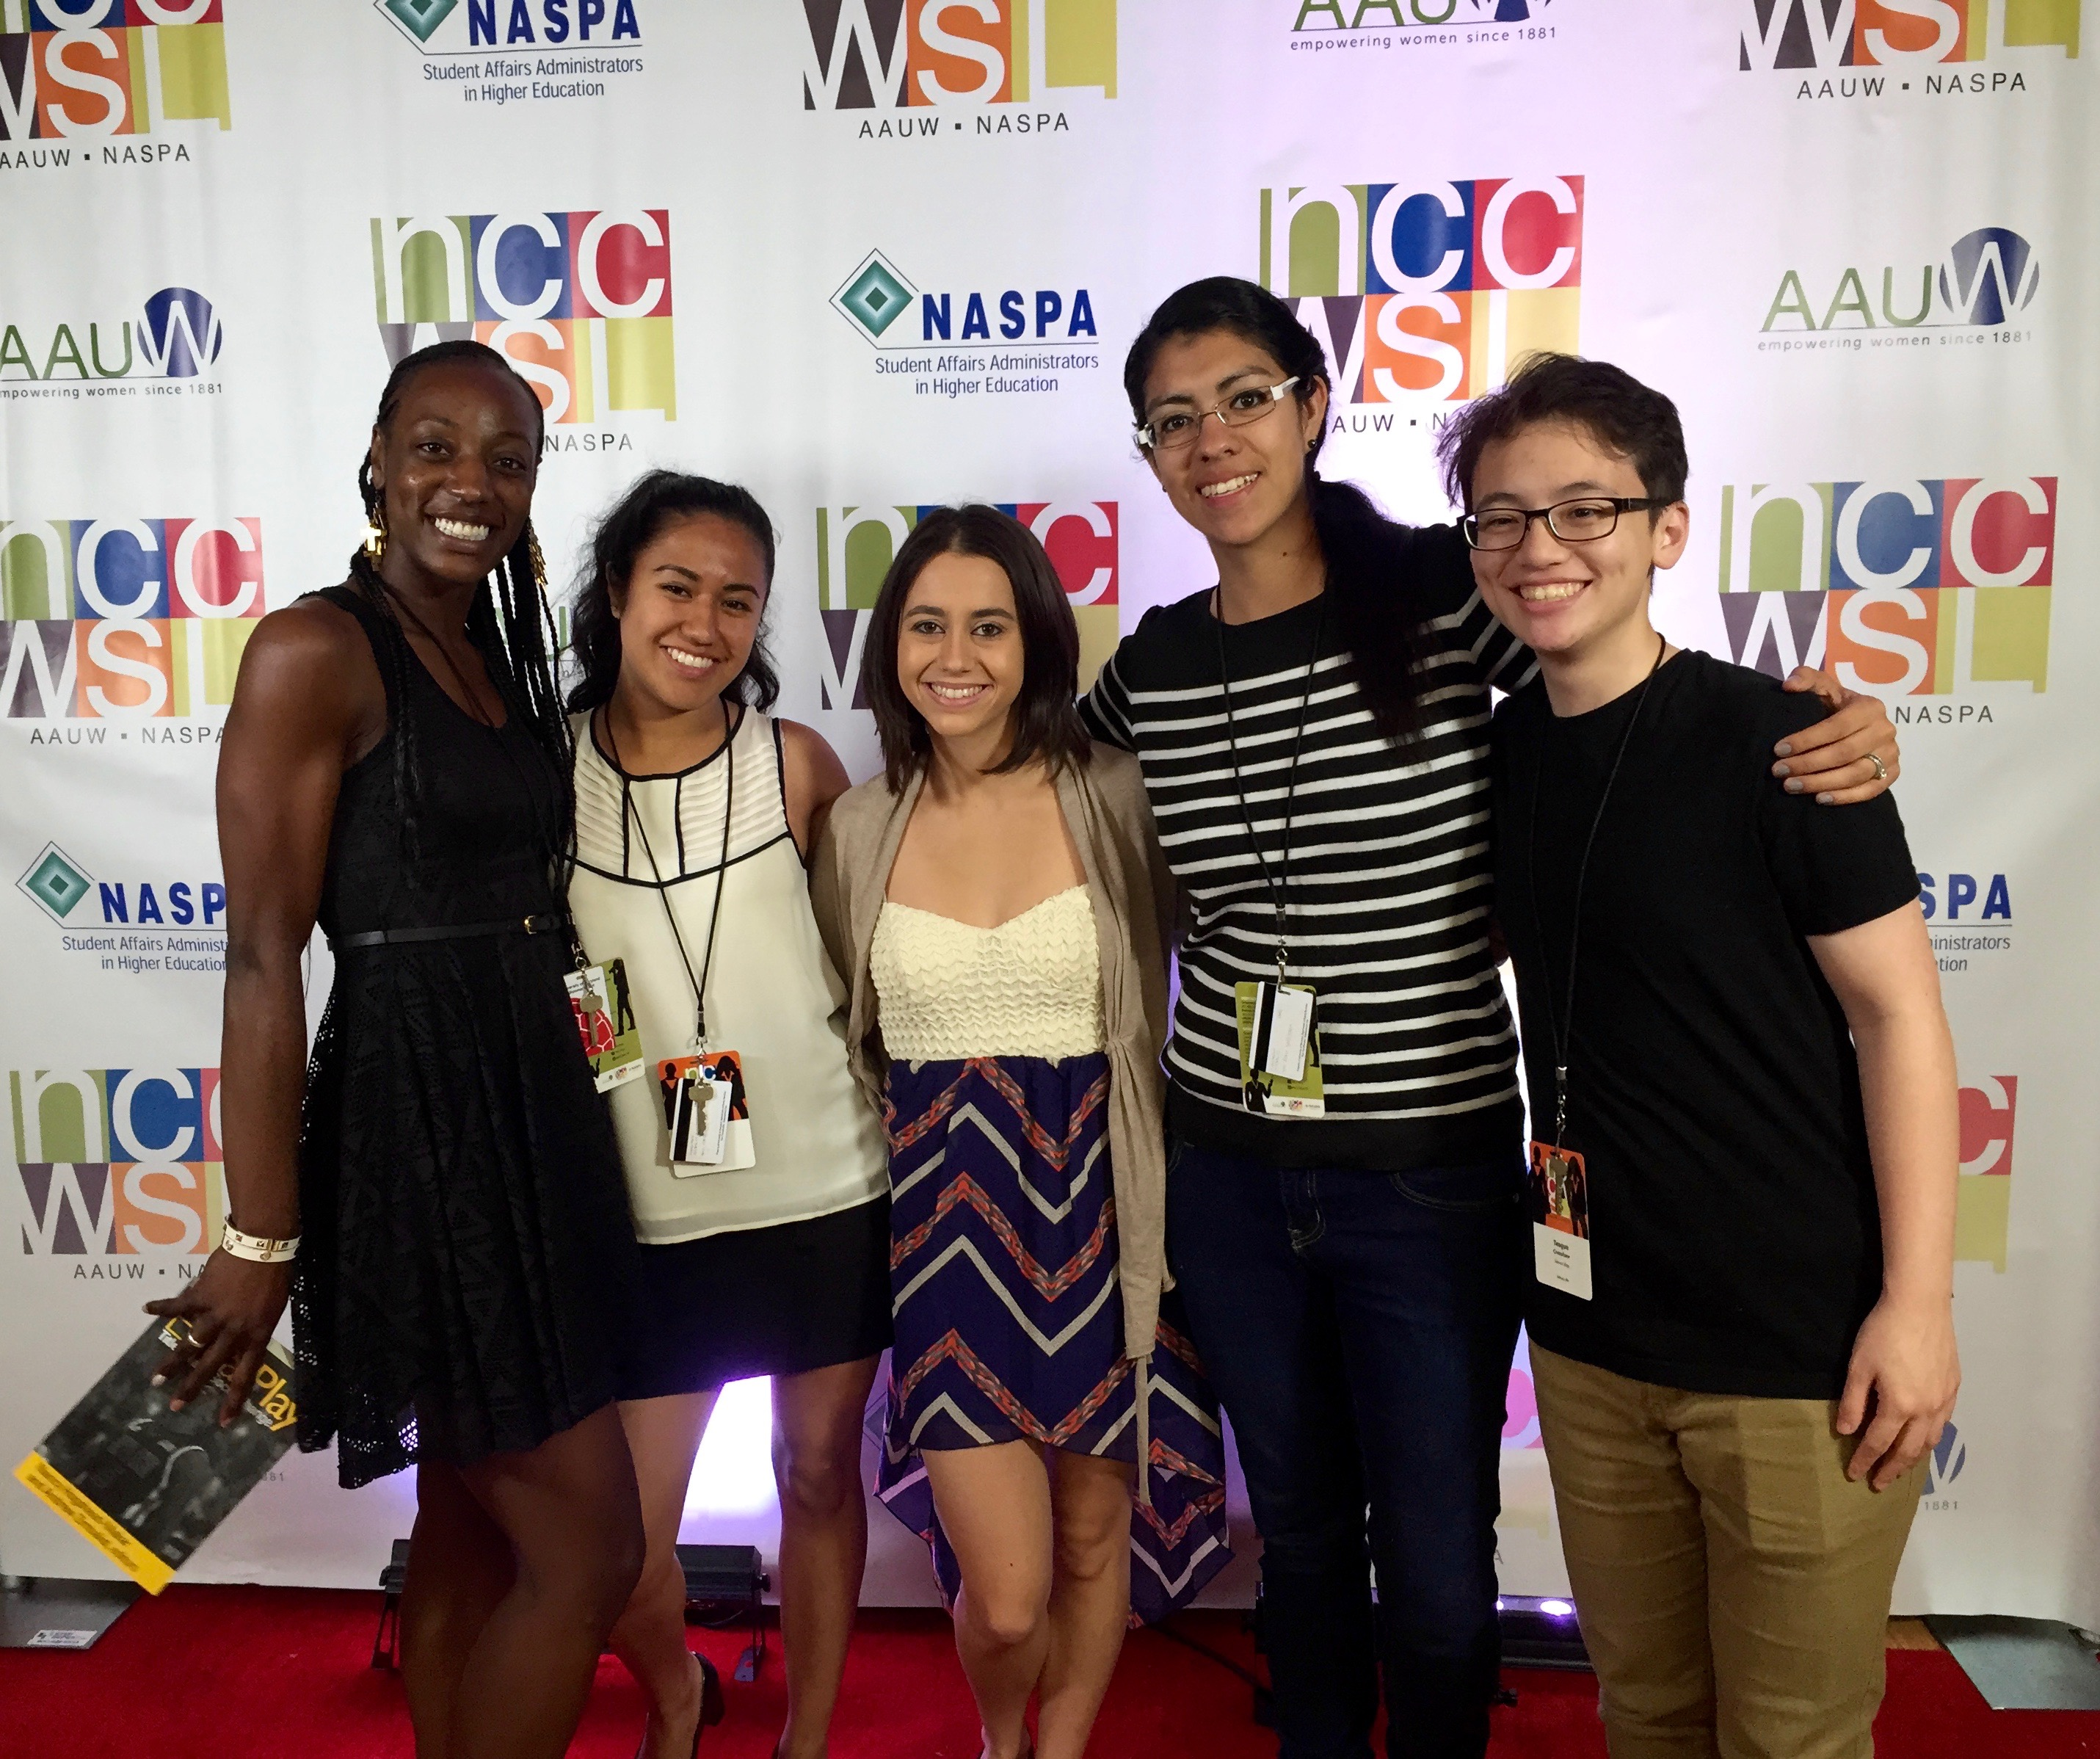 Steffini and NCCWSL Friends